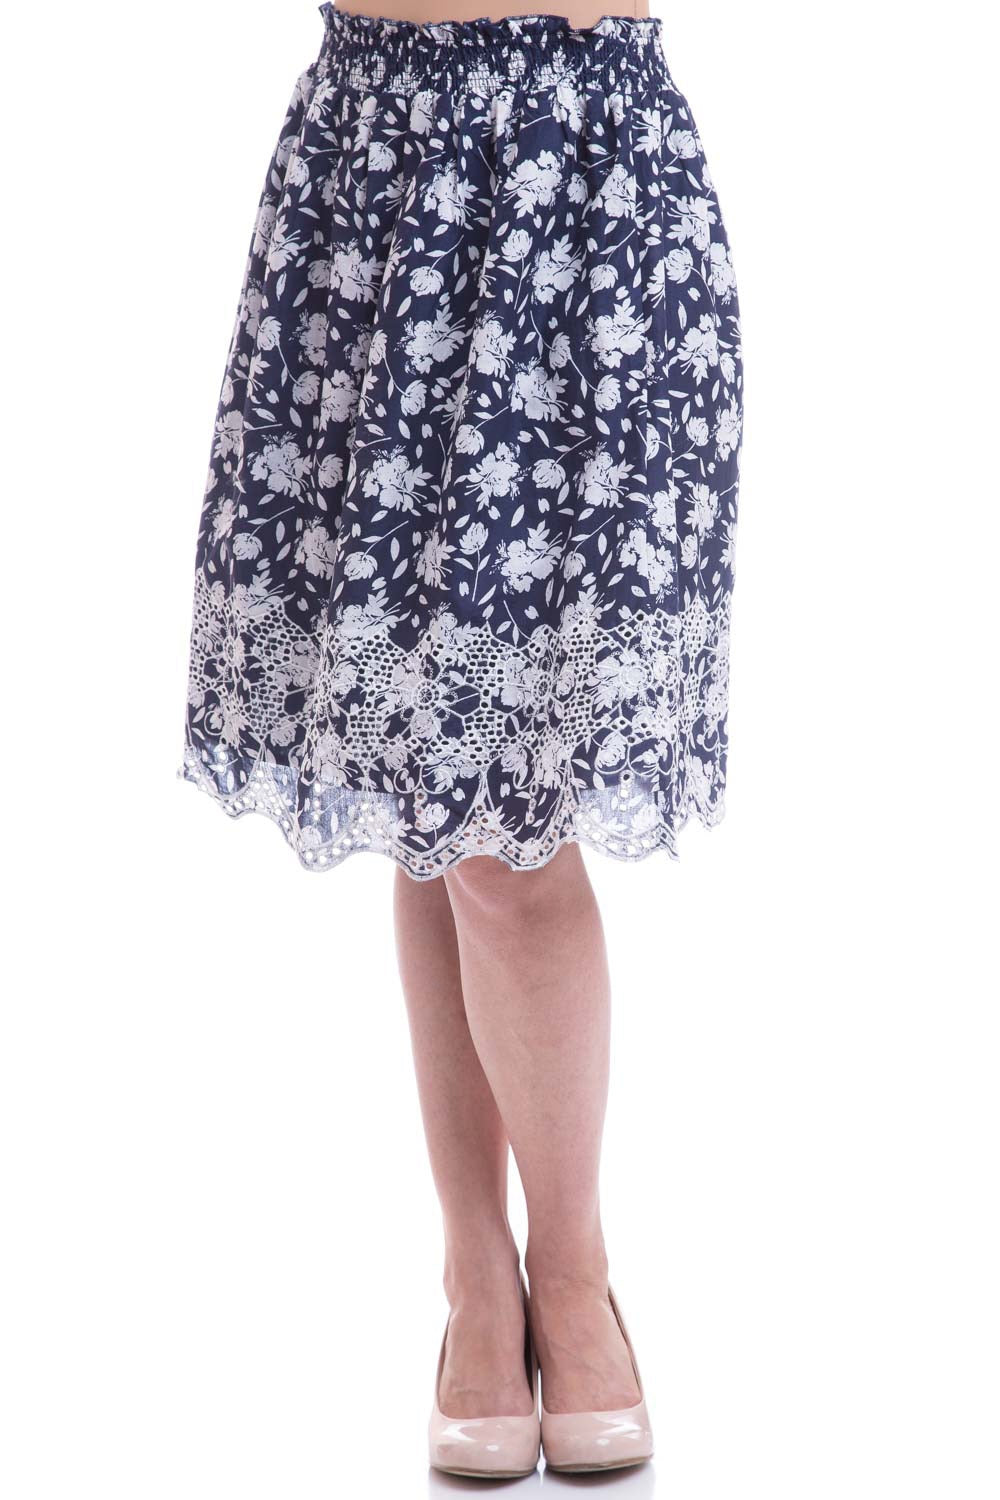 Type 2 Boho Beauty Skirt